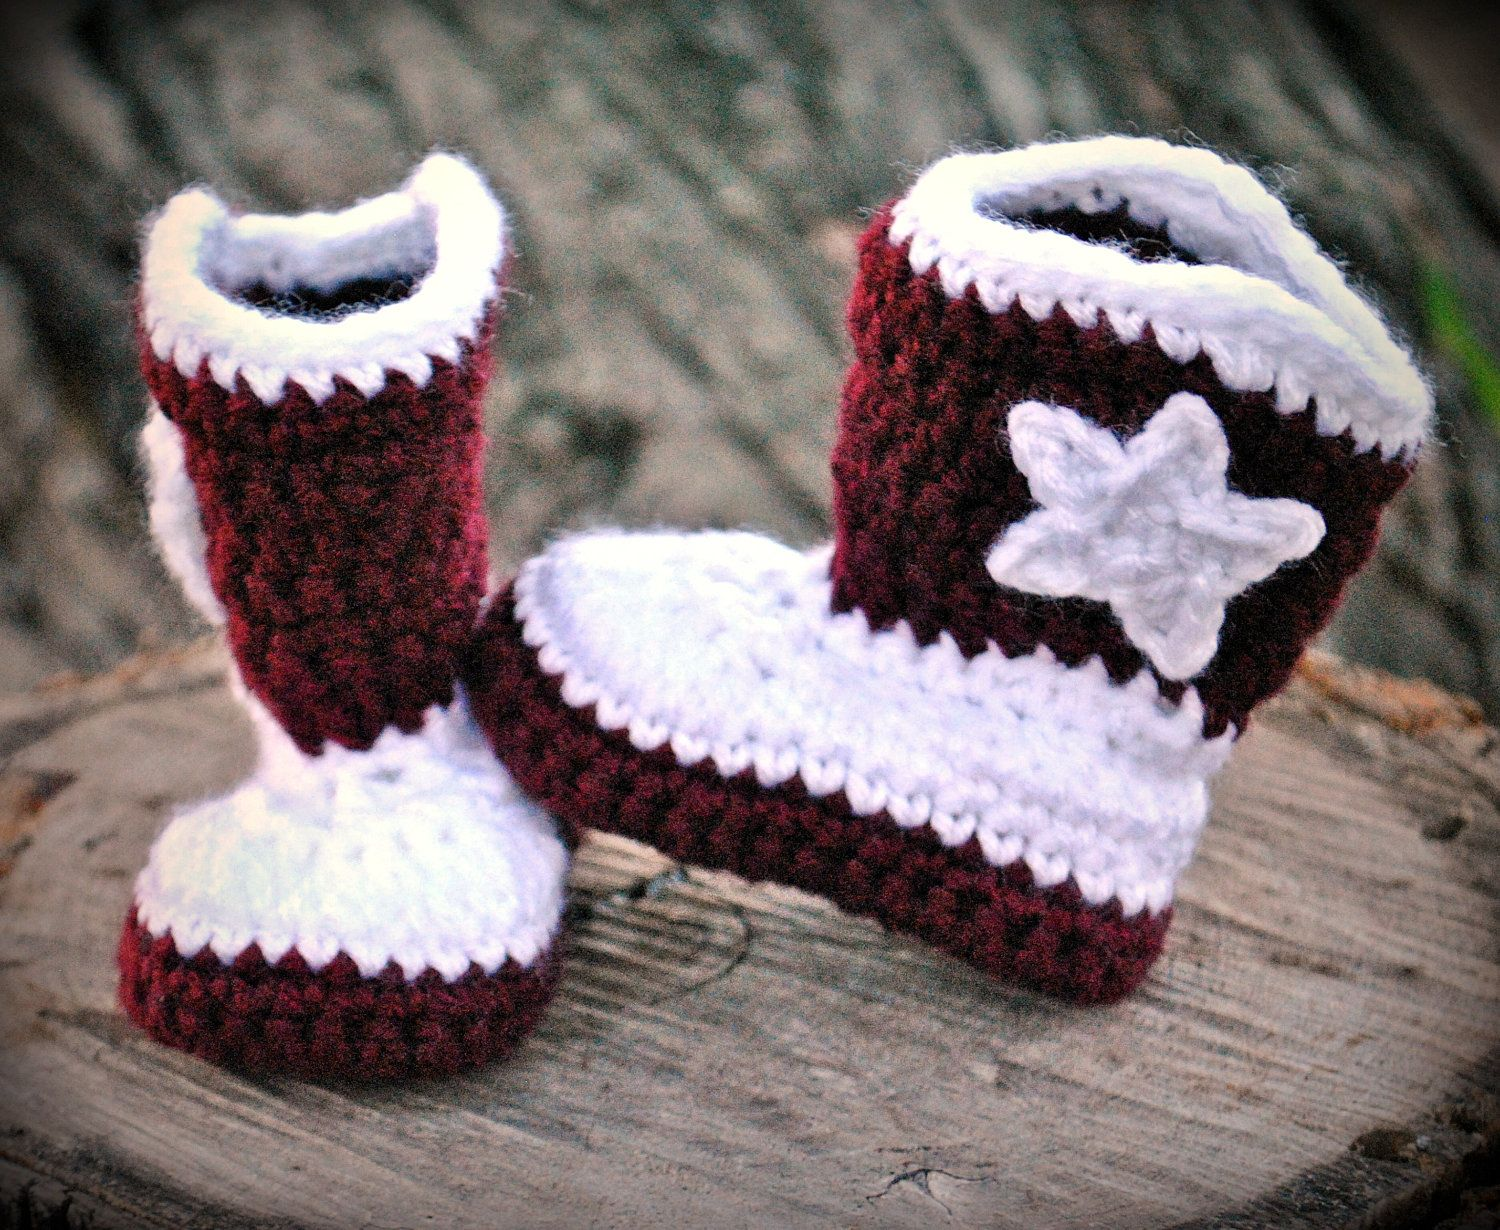 must have these <3 I would die if I could have someone make them for me please so cute..